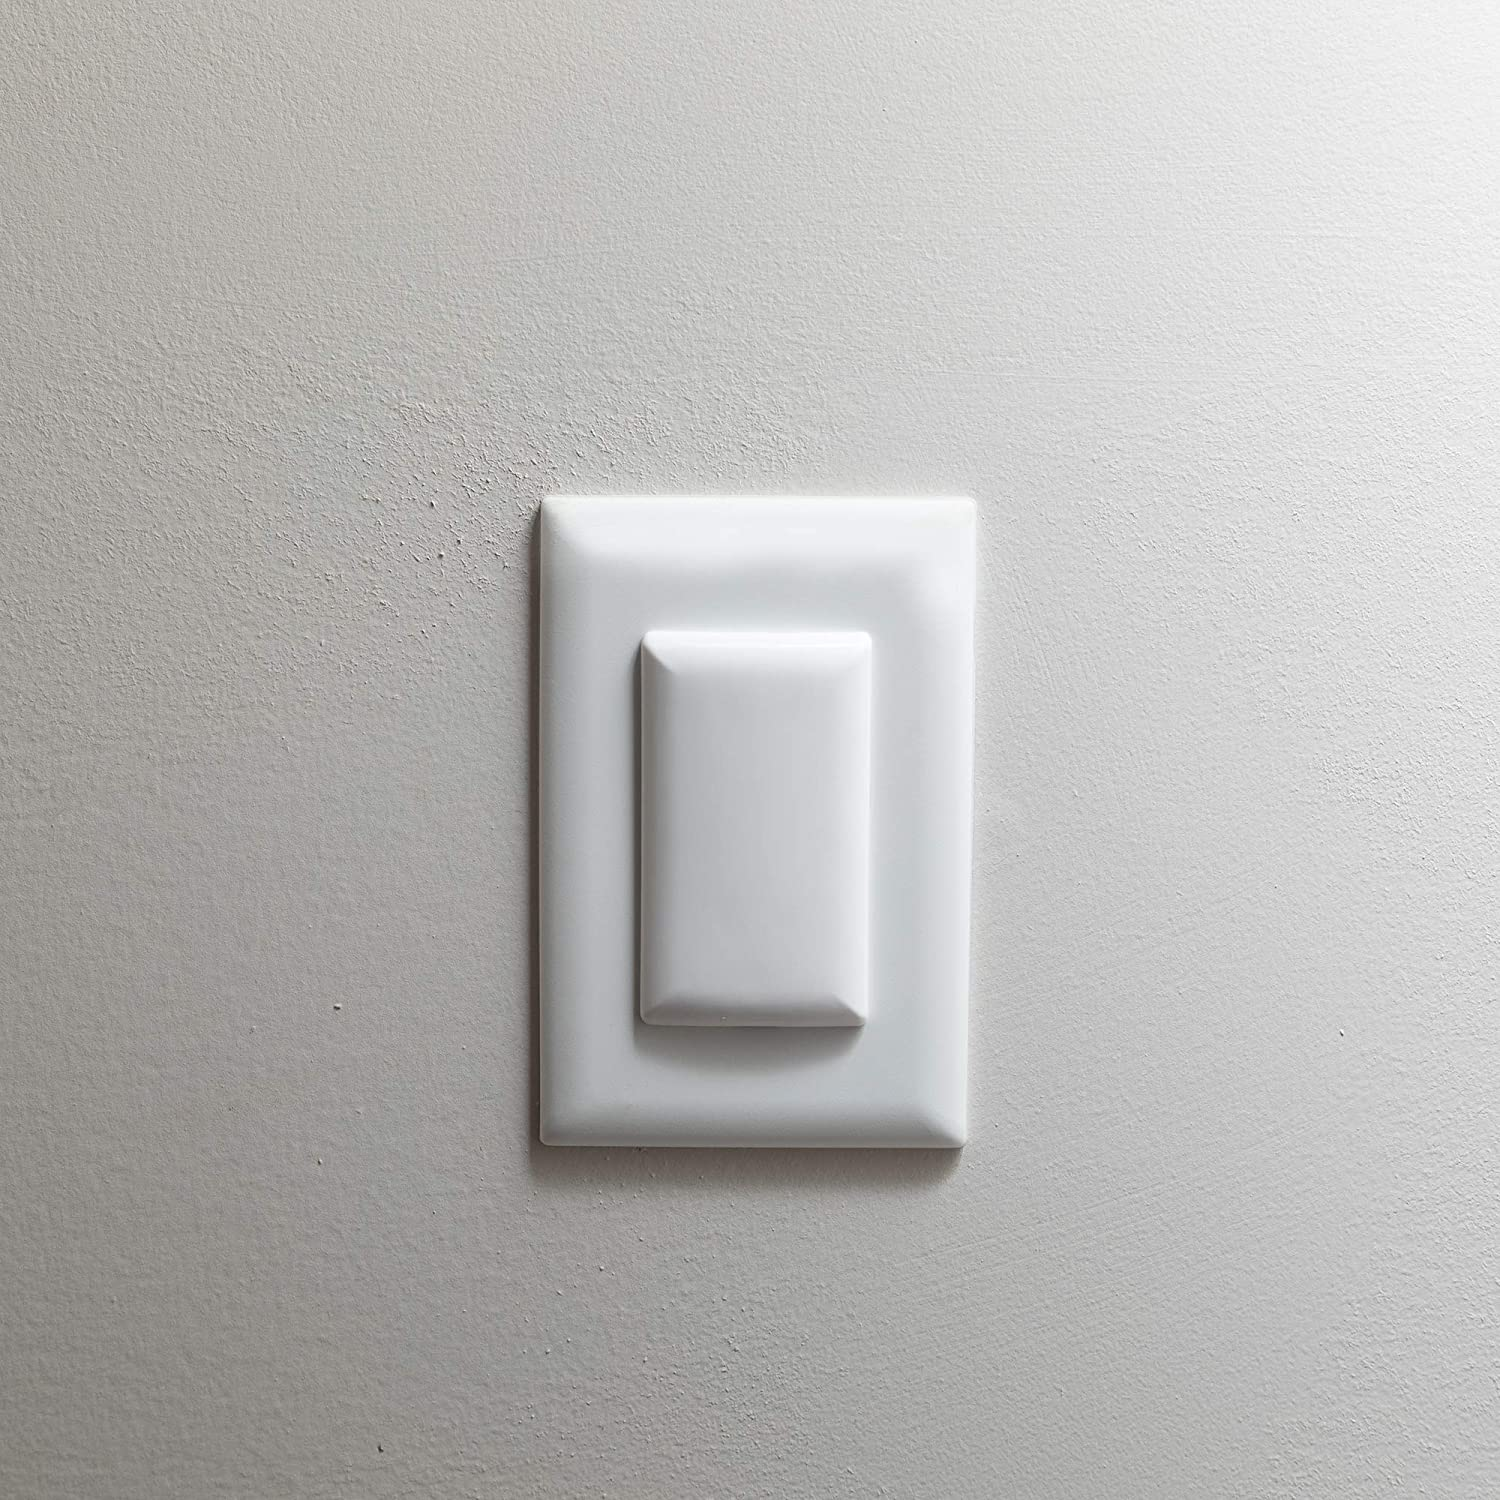 Qdos StayPut Double Outlet Plug Cover - One Plug Covers both Outlets! - Secure Fit and Beveled Edges Prevent Small Fingers from Removing Unlike Inferior Products  Fits All Outlets   6 pack   White